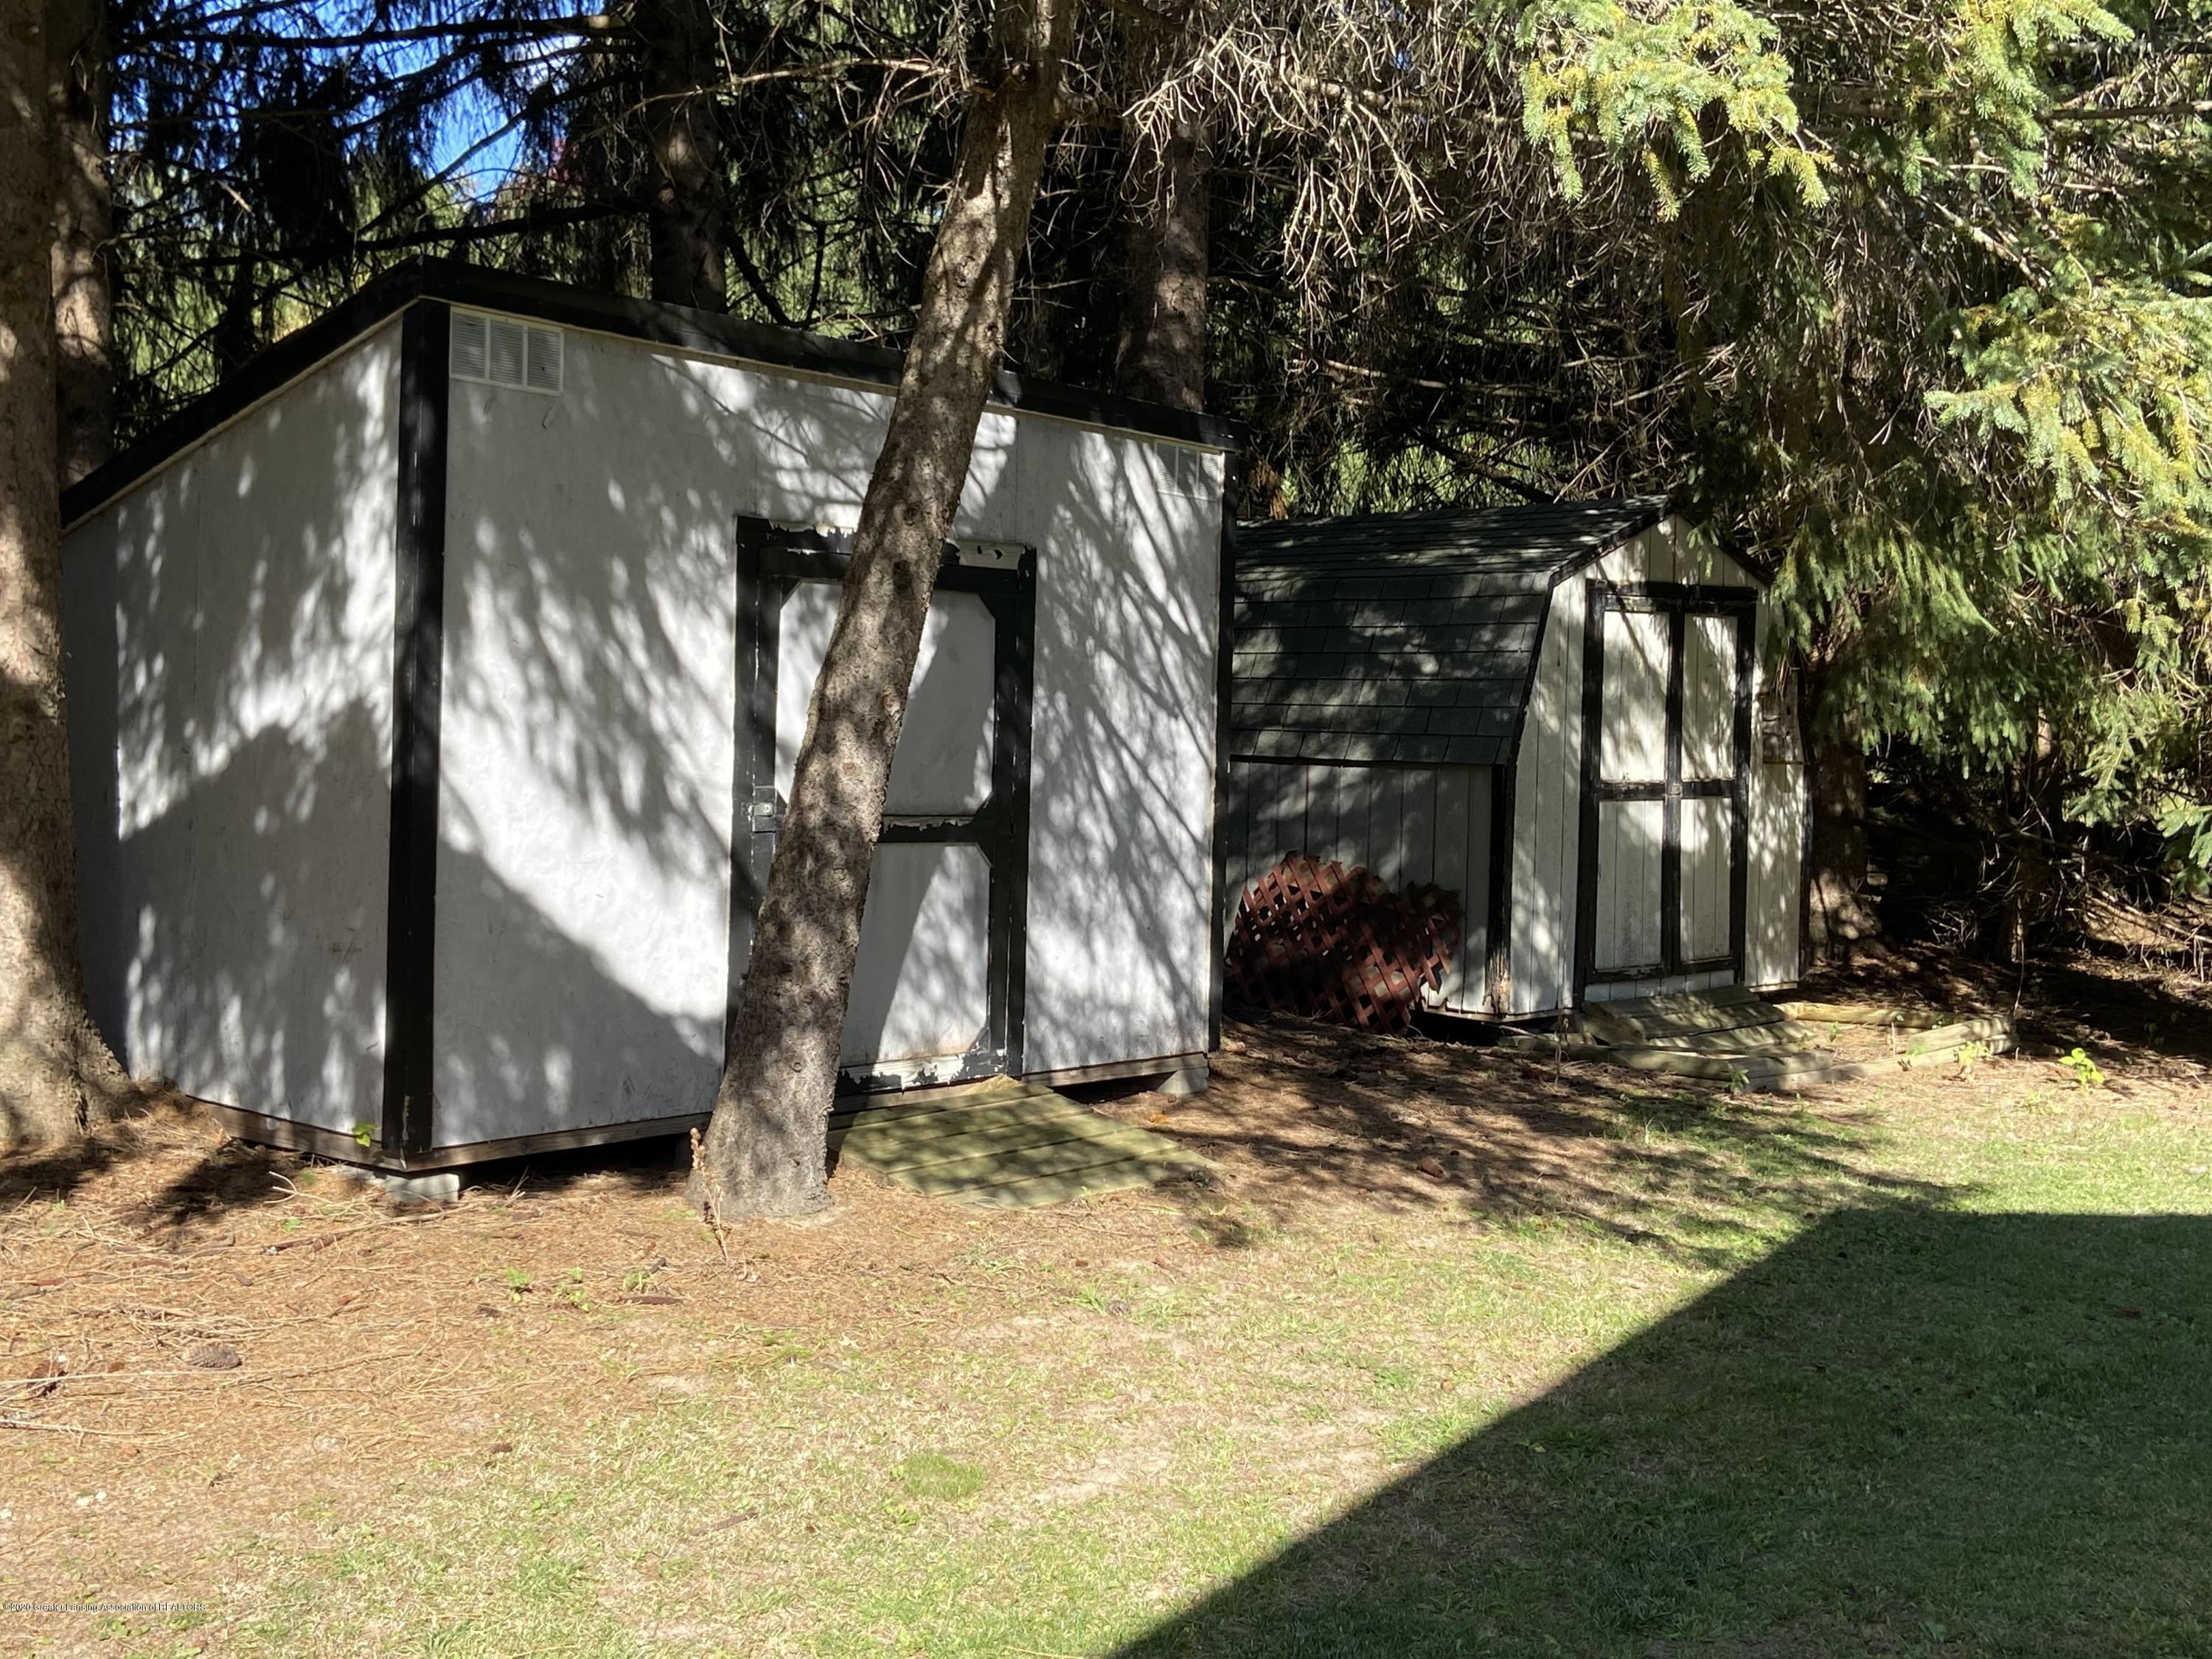 11801 Woodbury Rd - Storage sheds - 25